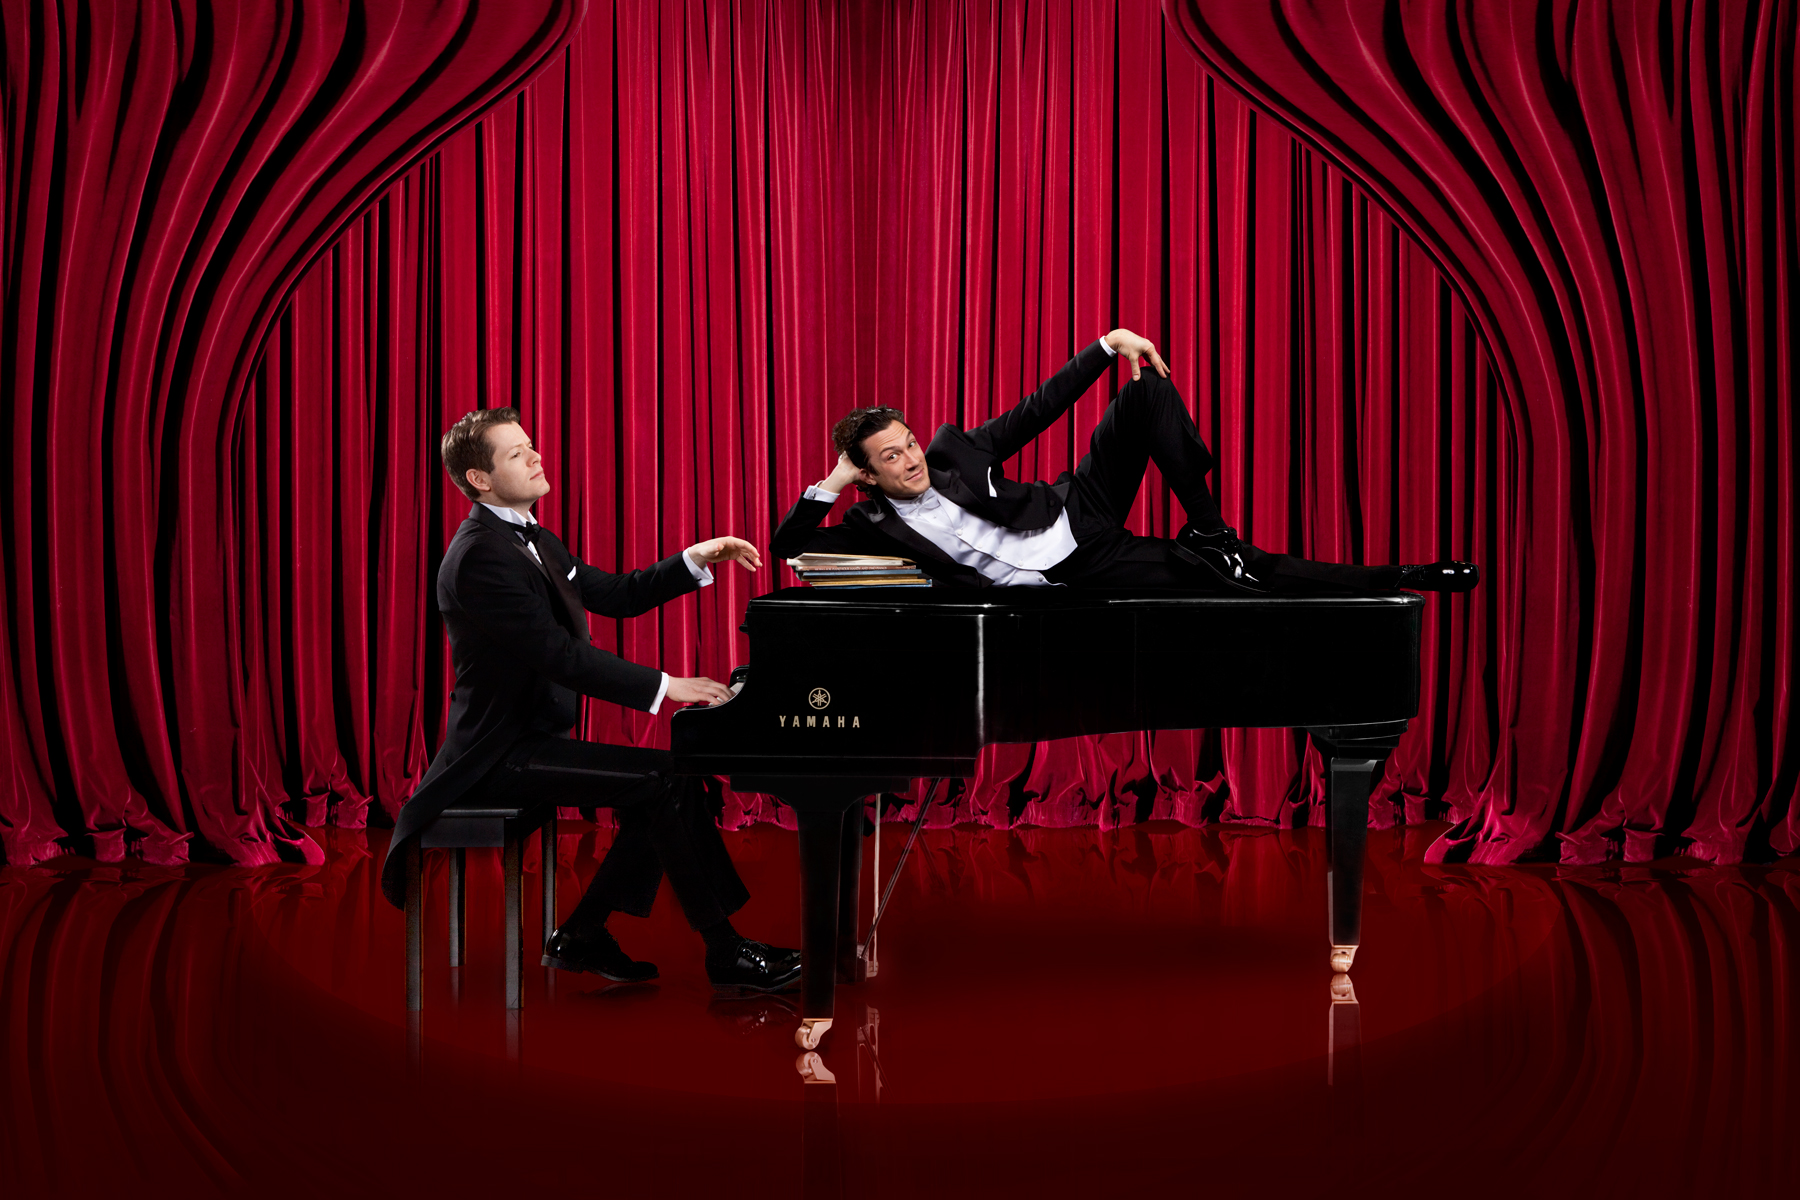 PAST EVENT: 2 Pianos 4 Hands – Thousand Islands Playhouse, Springer Theatre, May 24 – June 16, 2018